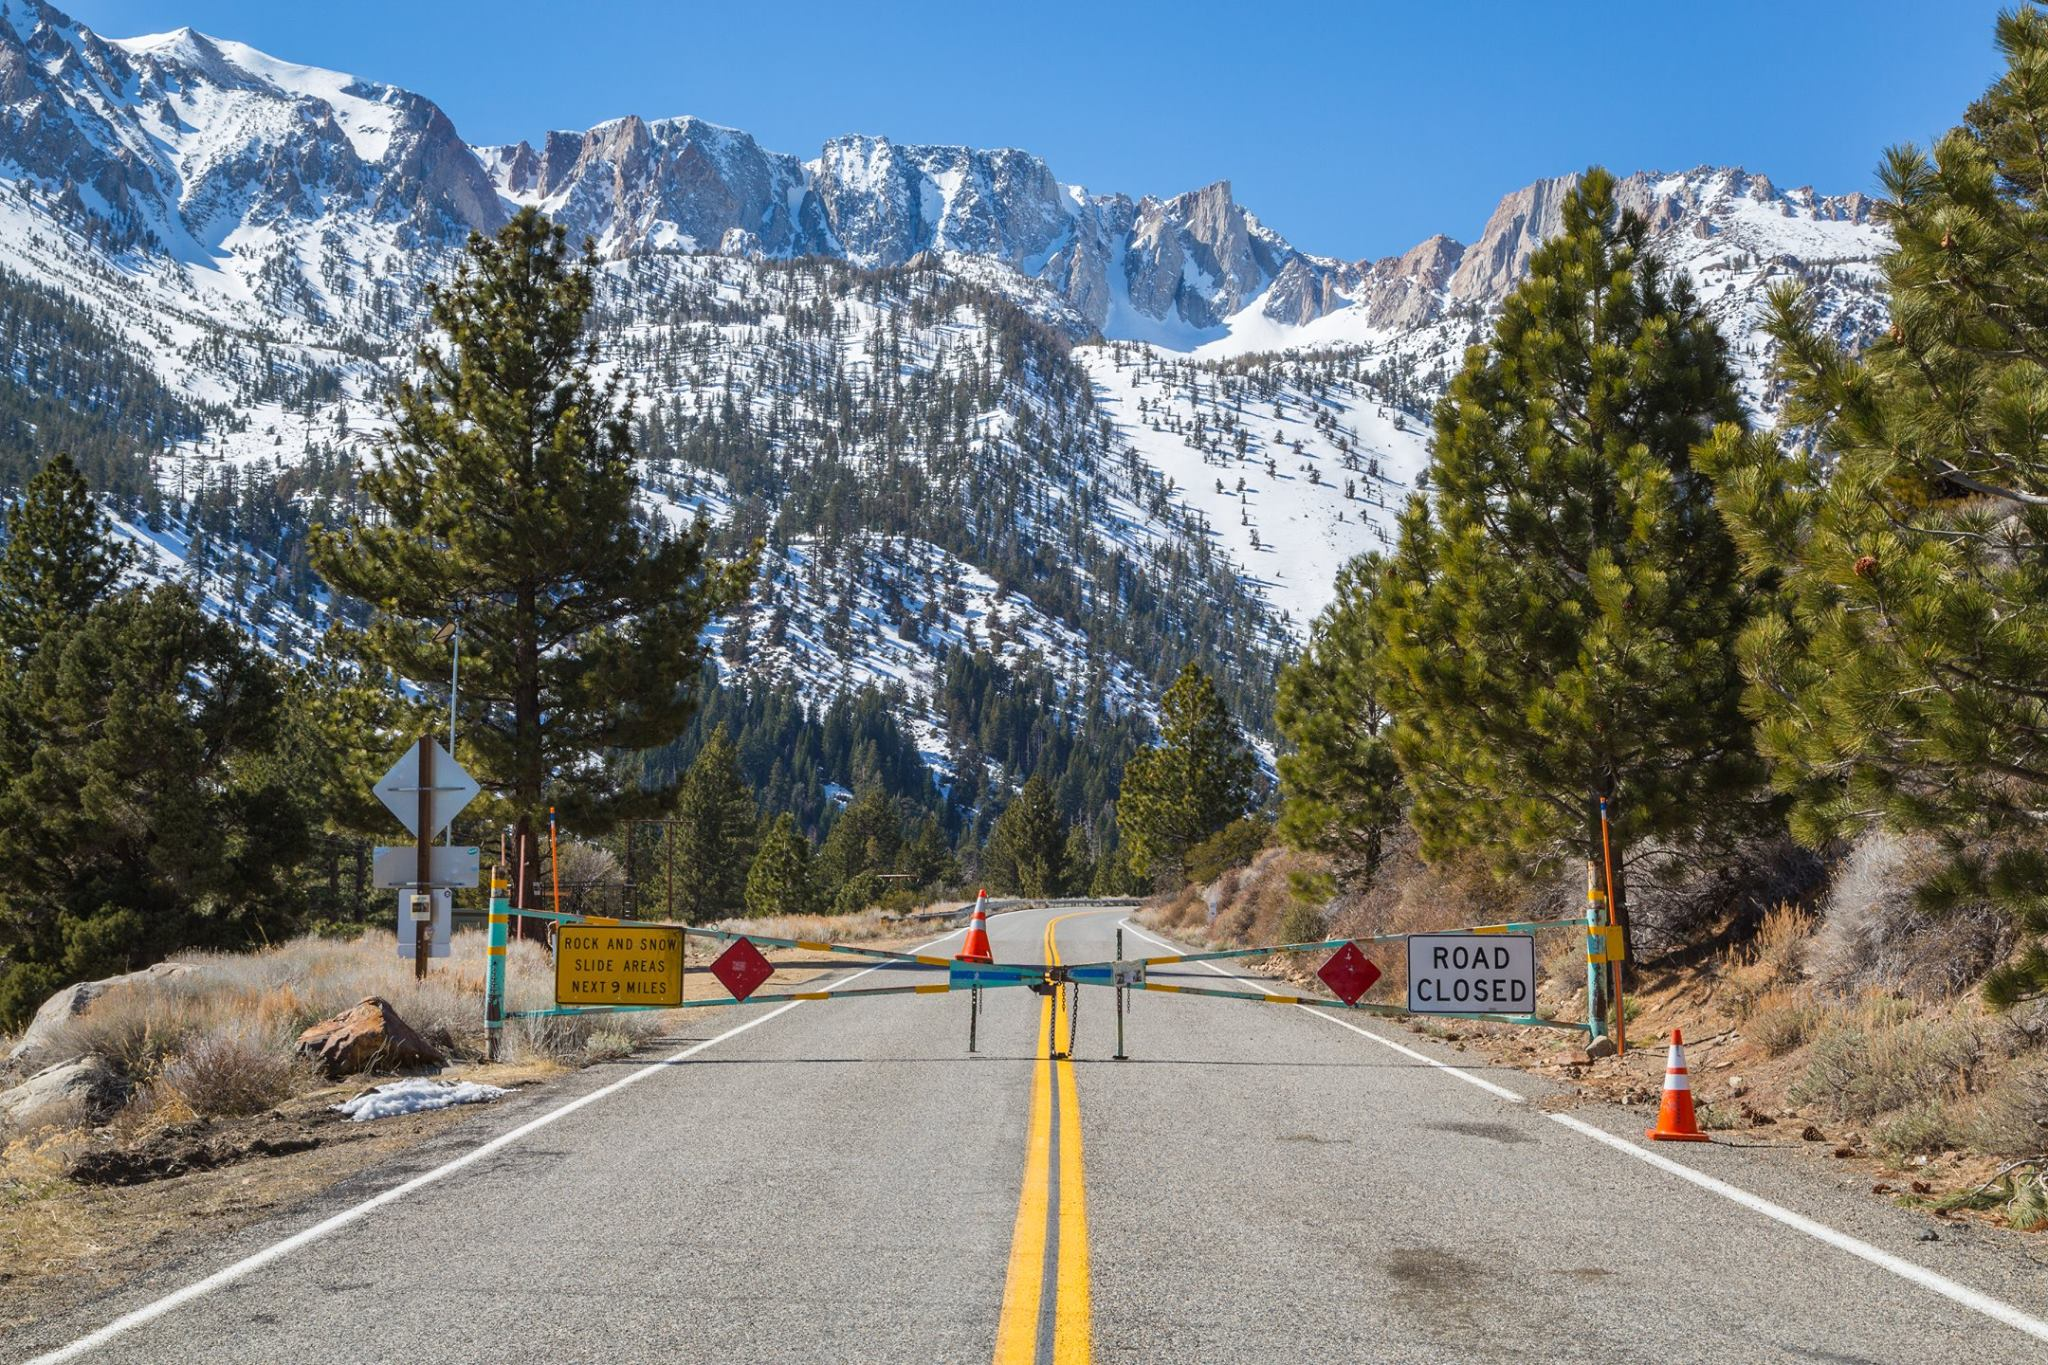 Tioga Pass, CA Will NOT OPEN Today as Scheduled | Opening ...